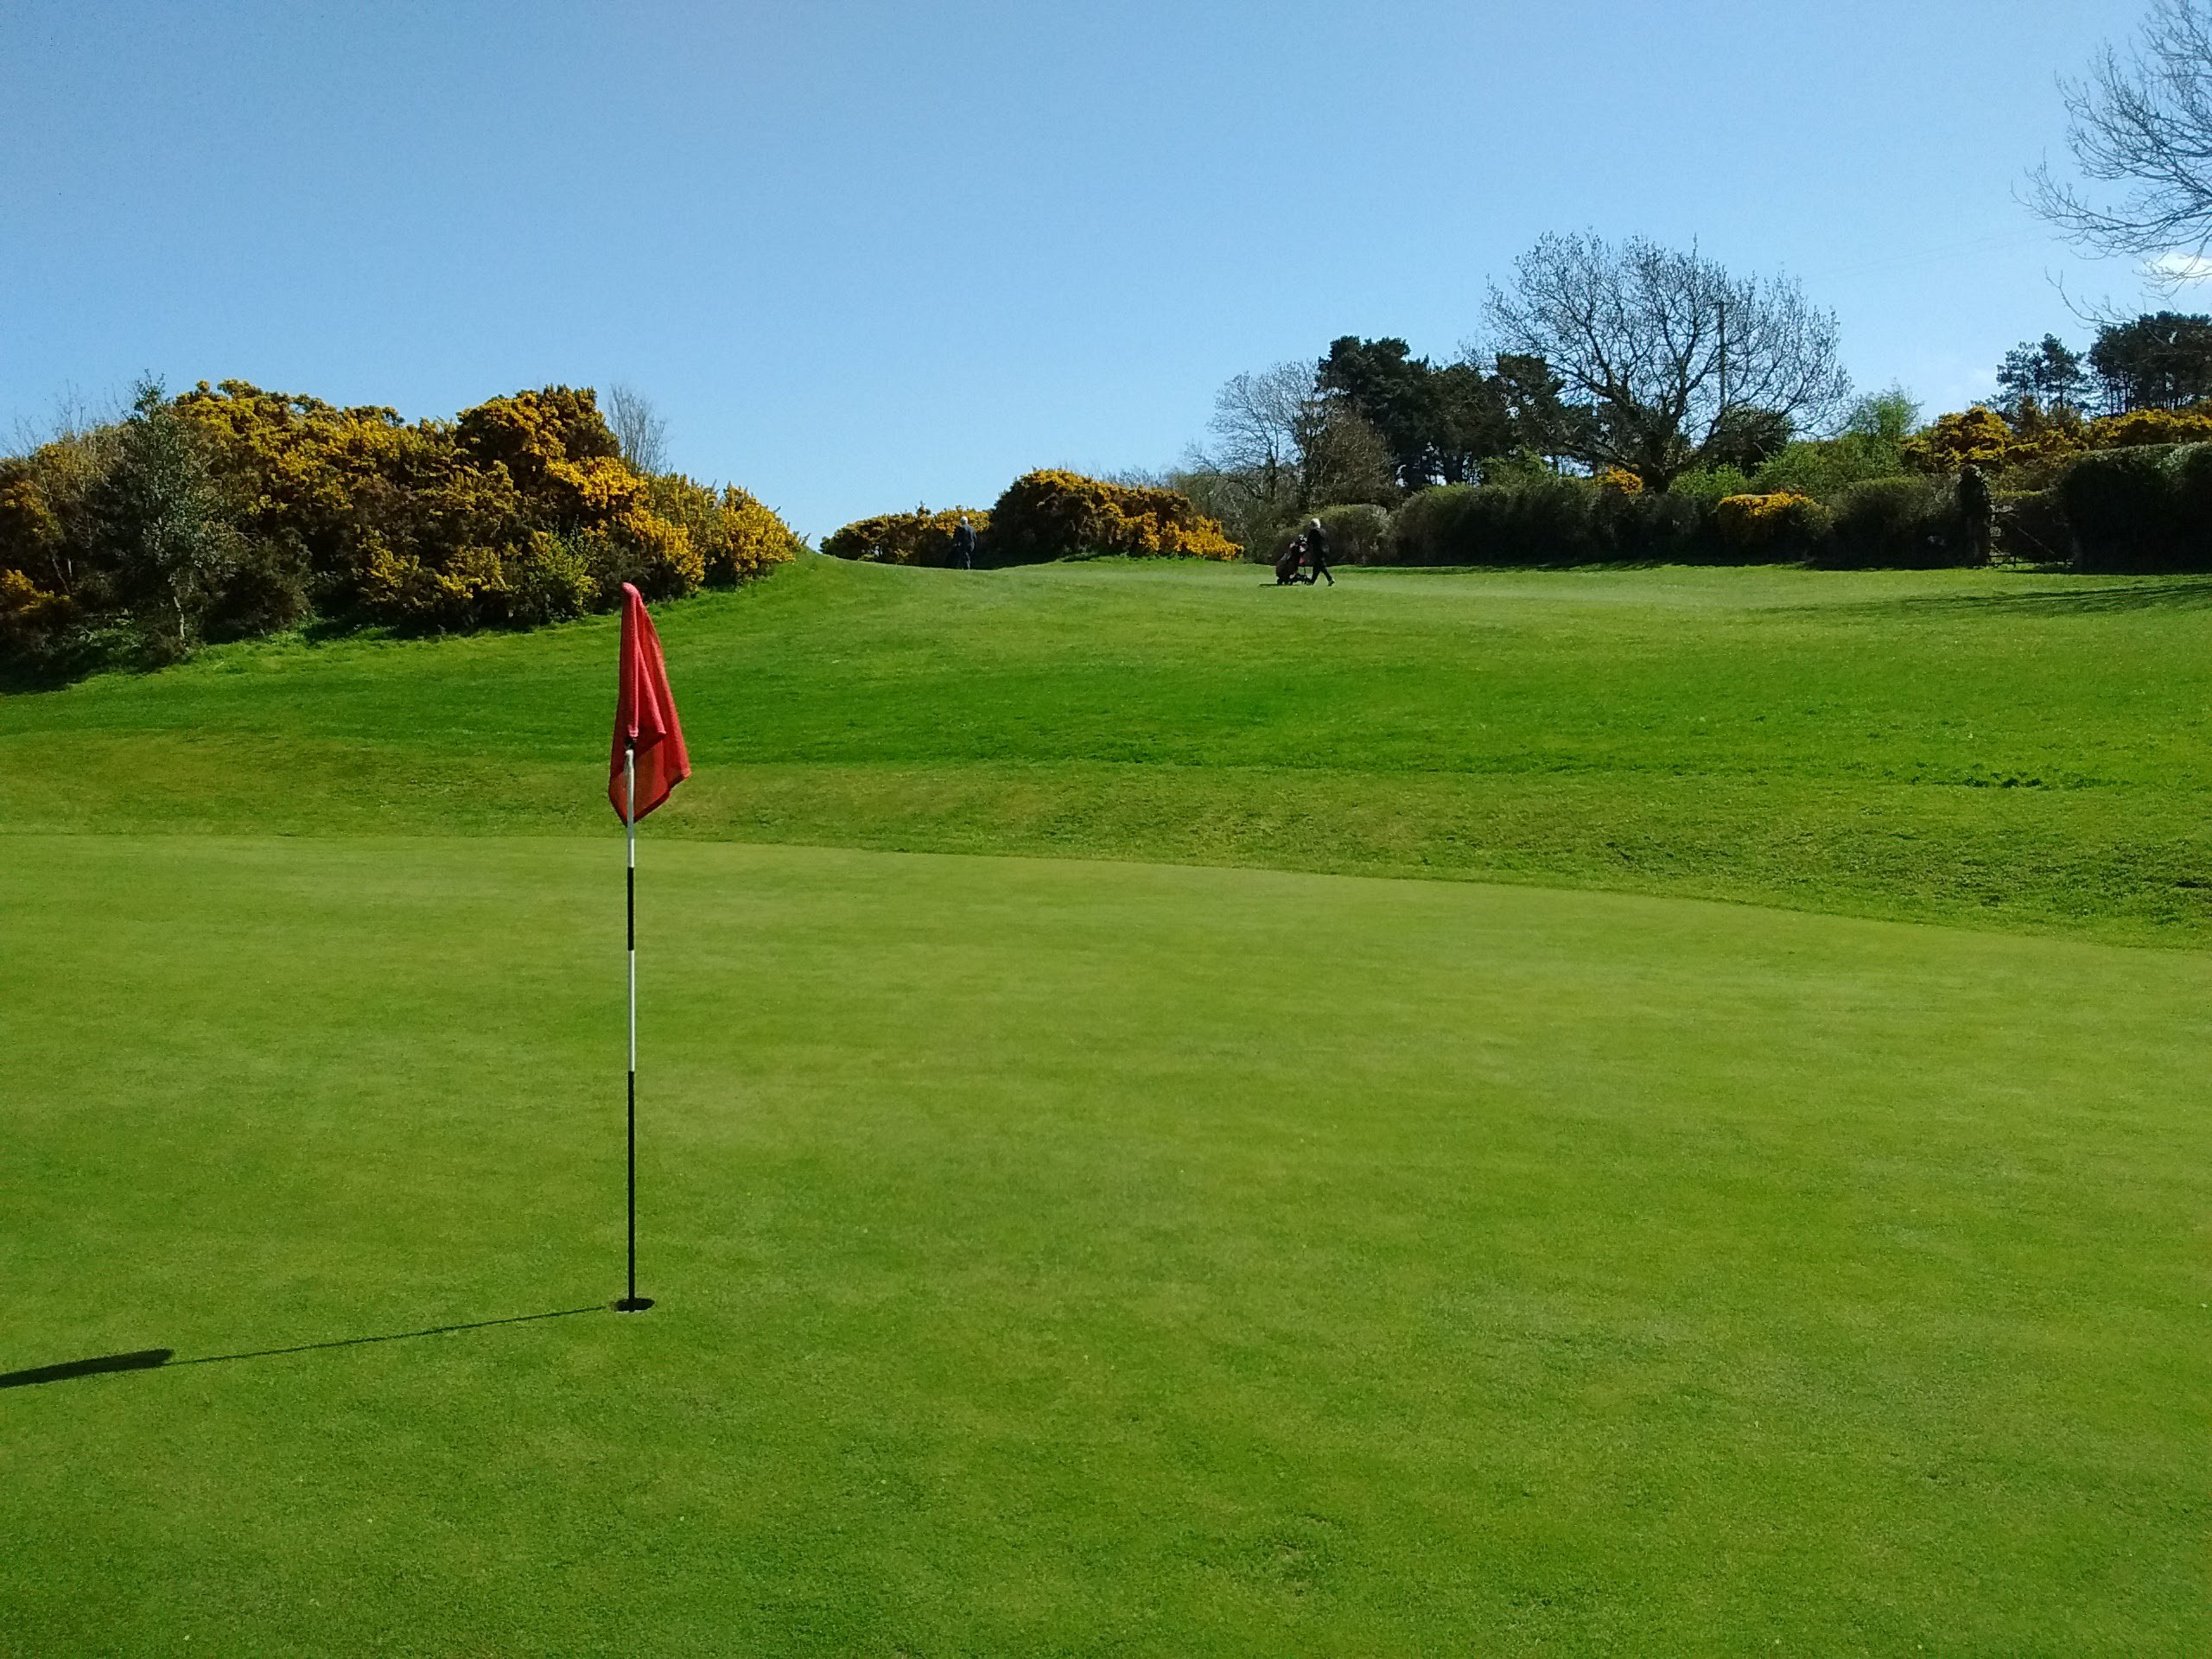 January & February 2019 - Special Offer Wednesday or Friday - 2 Ball 18 Holes Plus Hot Drink & Hot Meal 30 Pounds